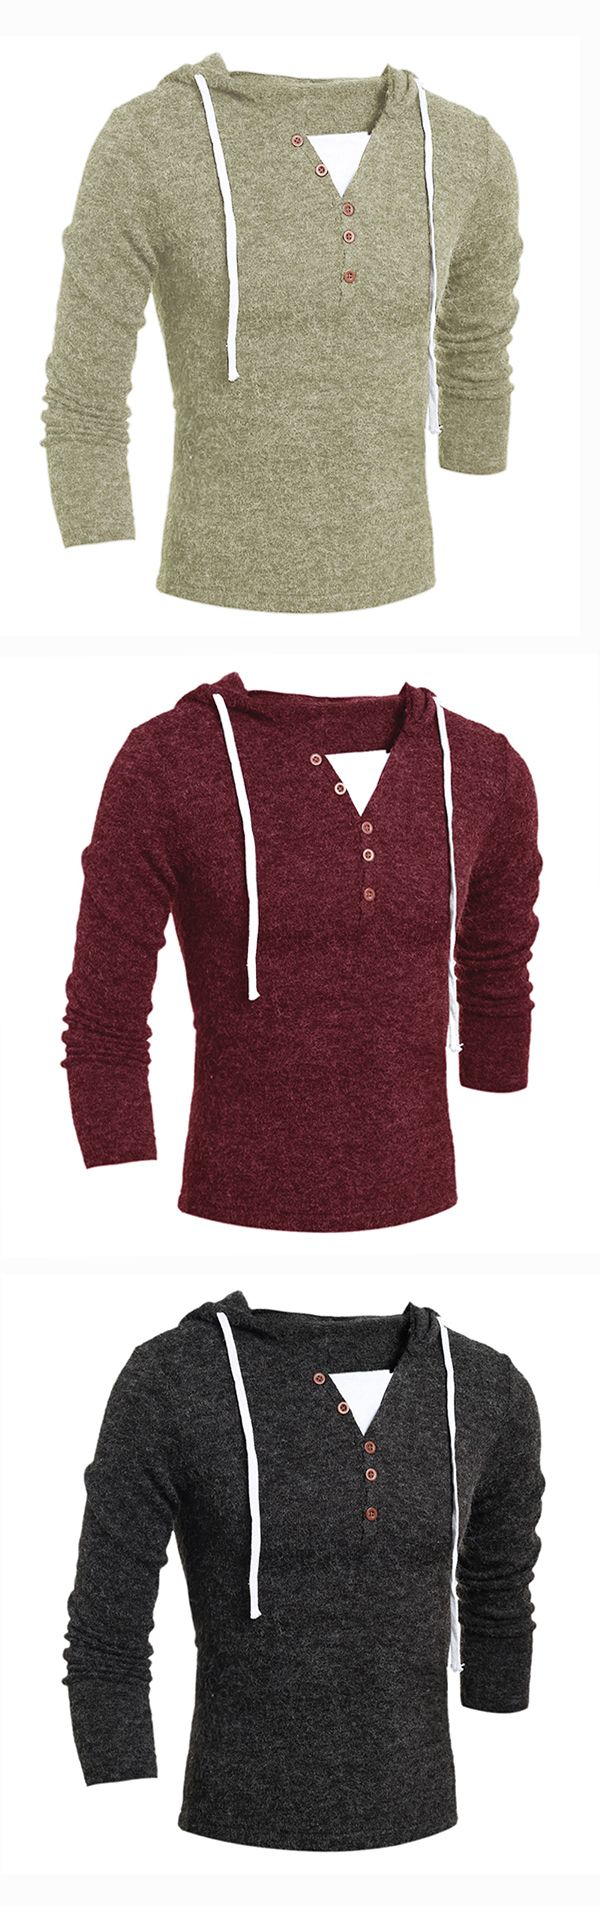 Mens Casual V-neck Buttons Knitted Hooded Sweater